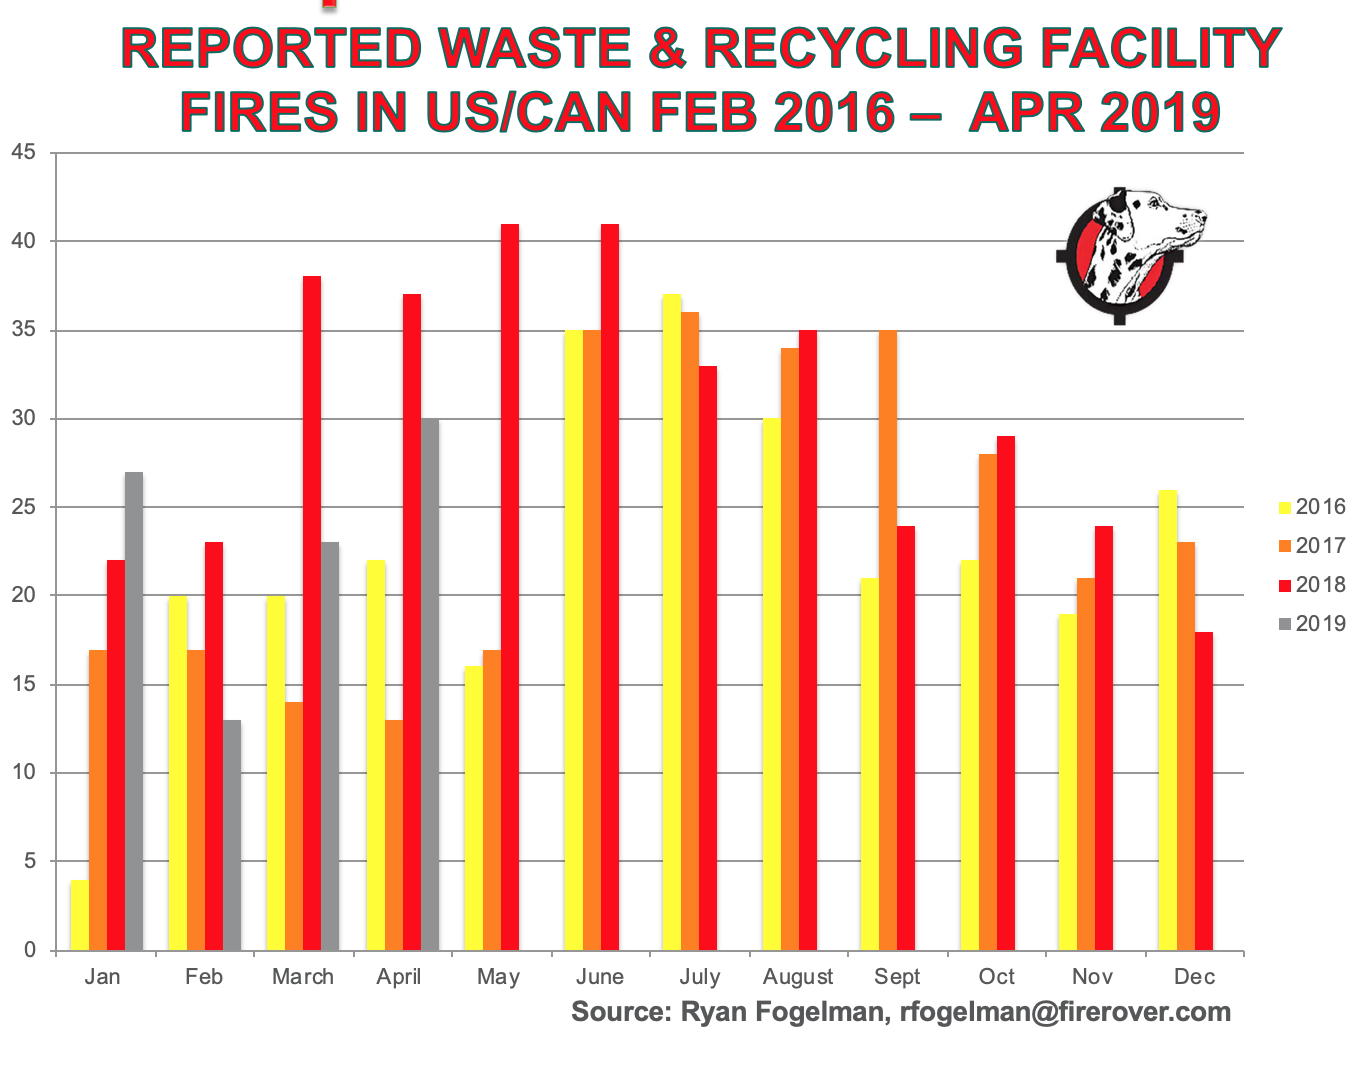 waste-recycling-facility-fires-Feb-2016-Apr-2019.png